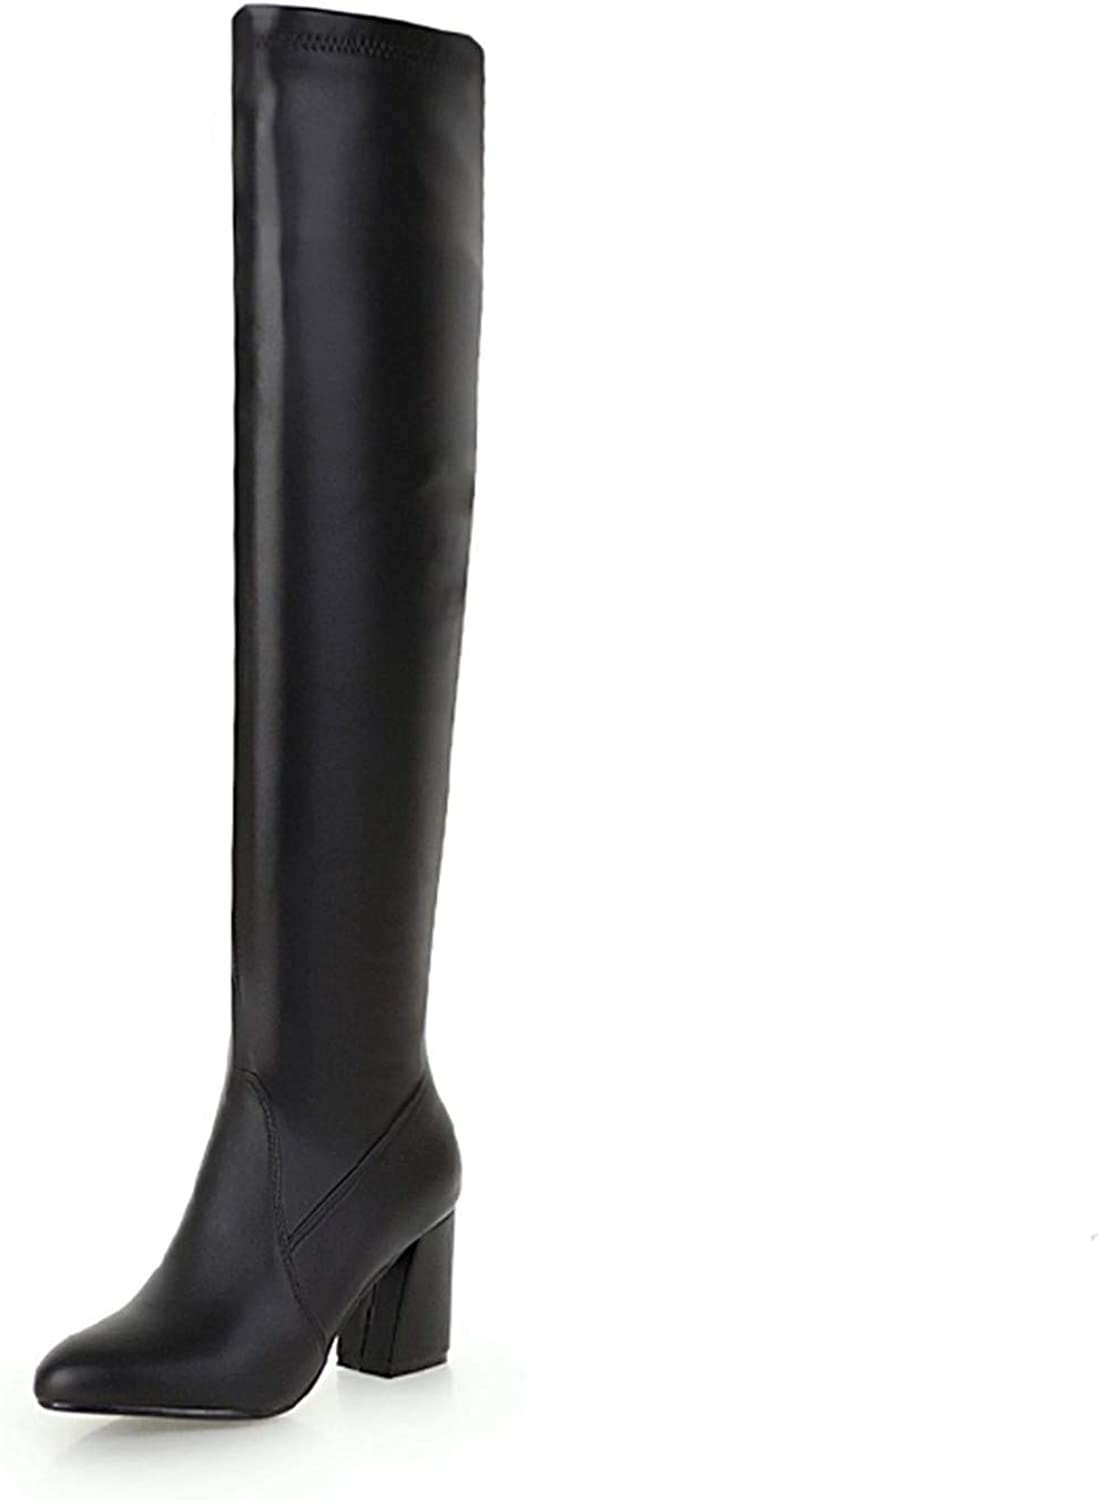 Over The Knee Women Boots Pu Thick High Heels Boot New Pointed Toe Female shoes Winter Warm 48